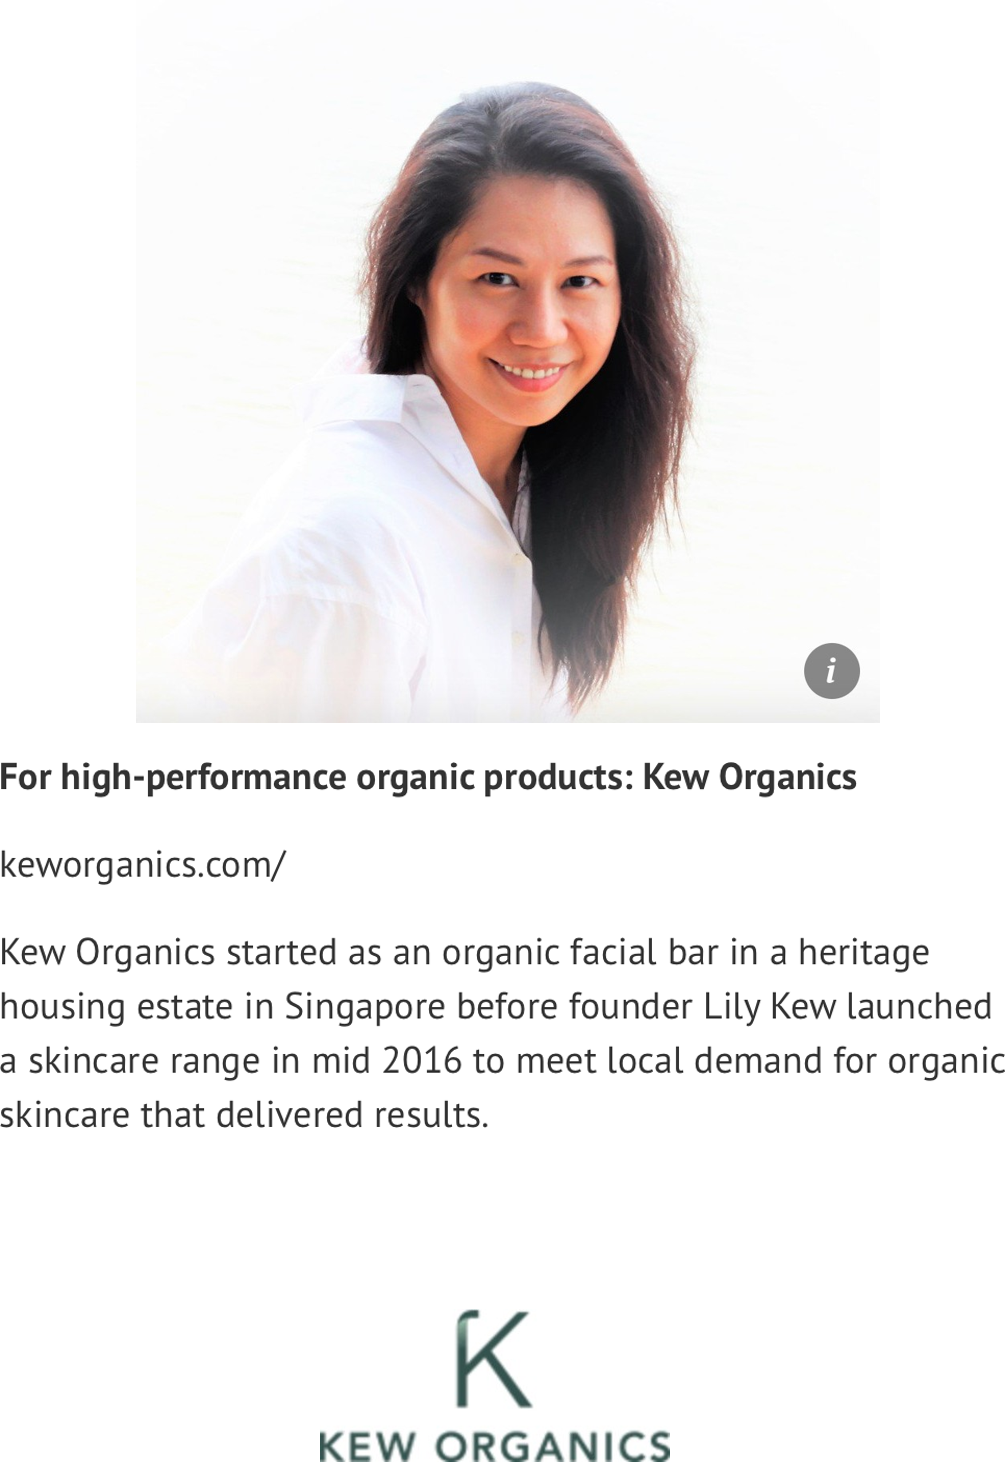 South China Morning Post – Startups that could make Singapore a